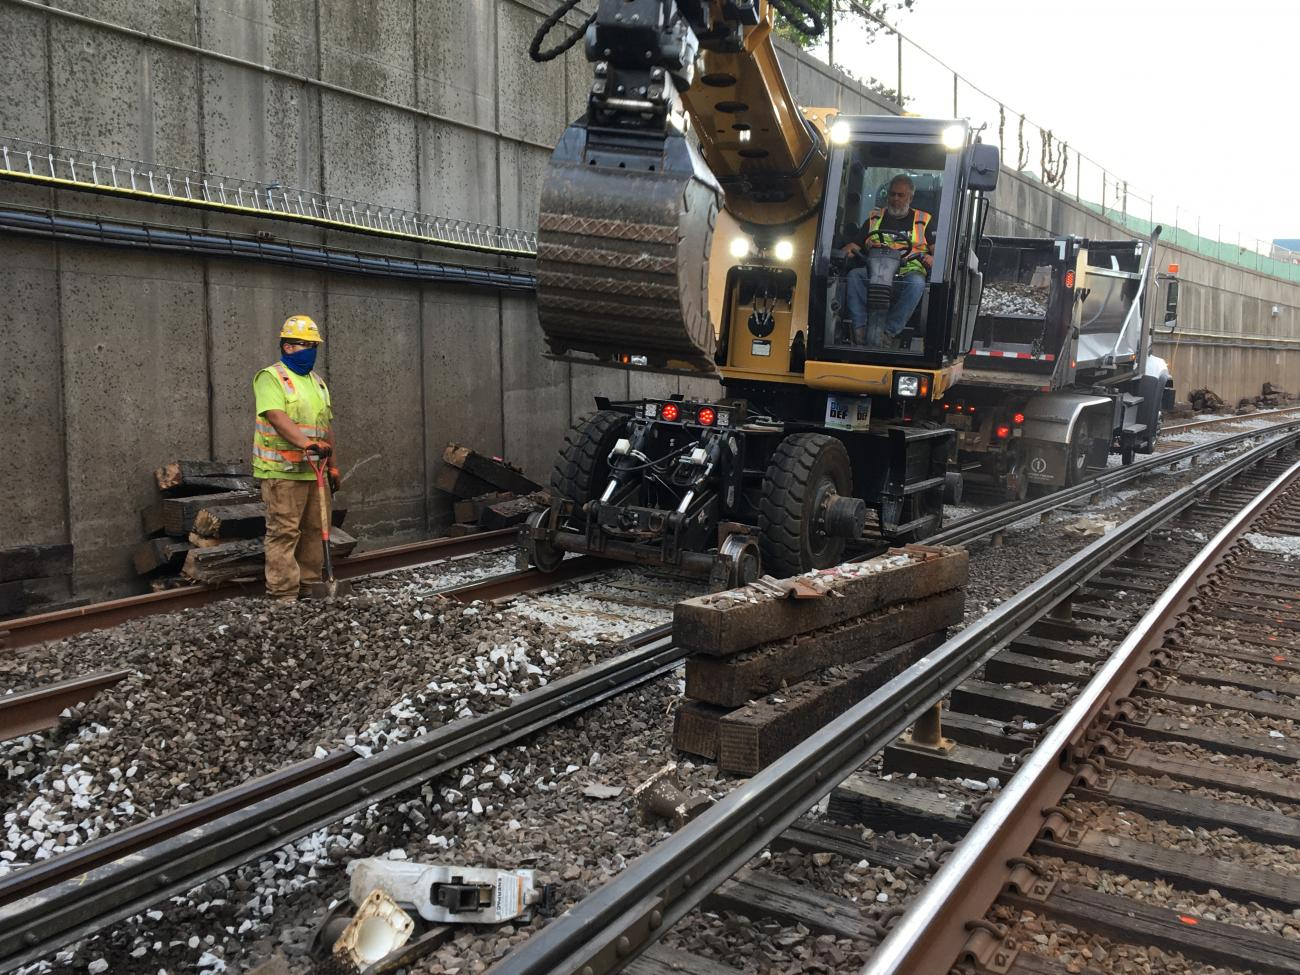 Two member construction crew works on railway tracks. A man uses heavy machinery to replace rail ties and remove rubble.